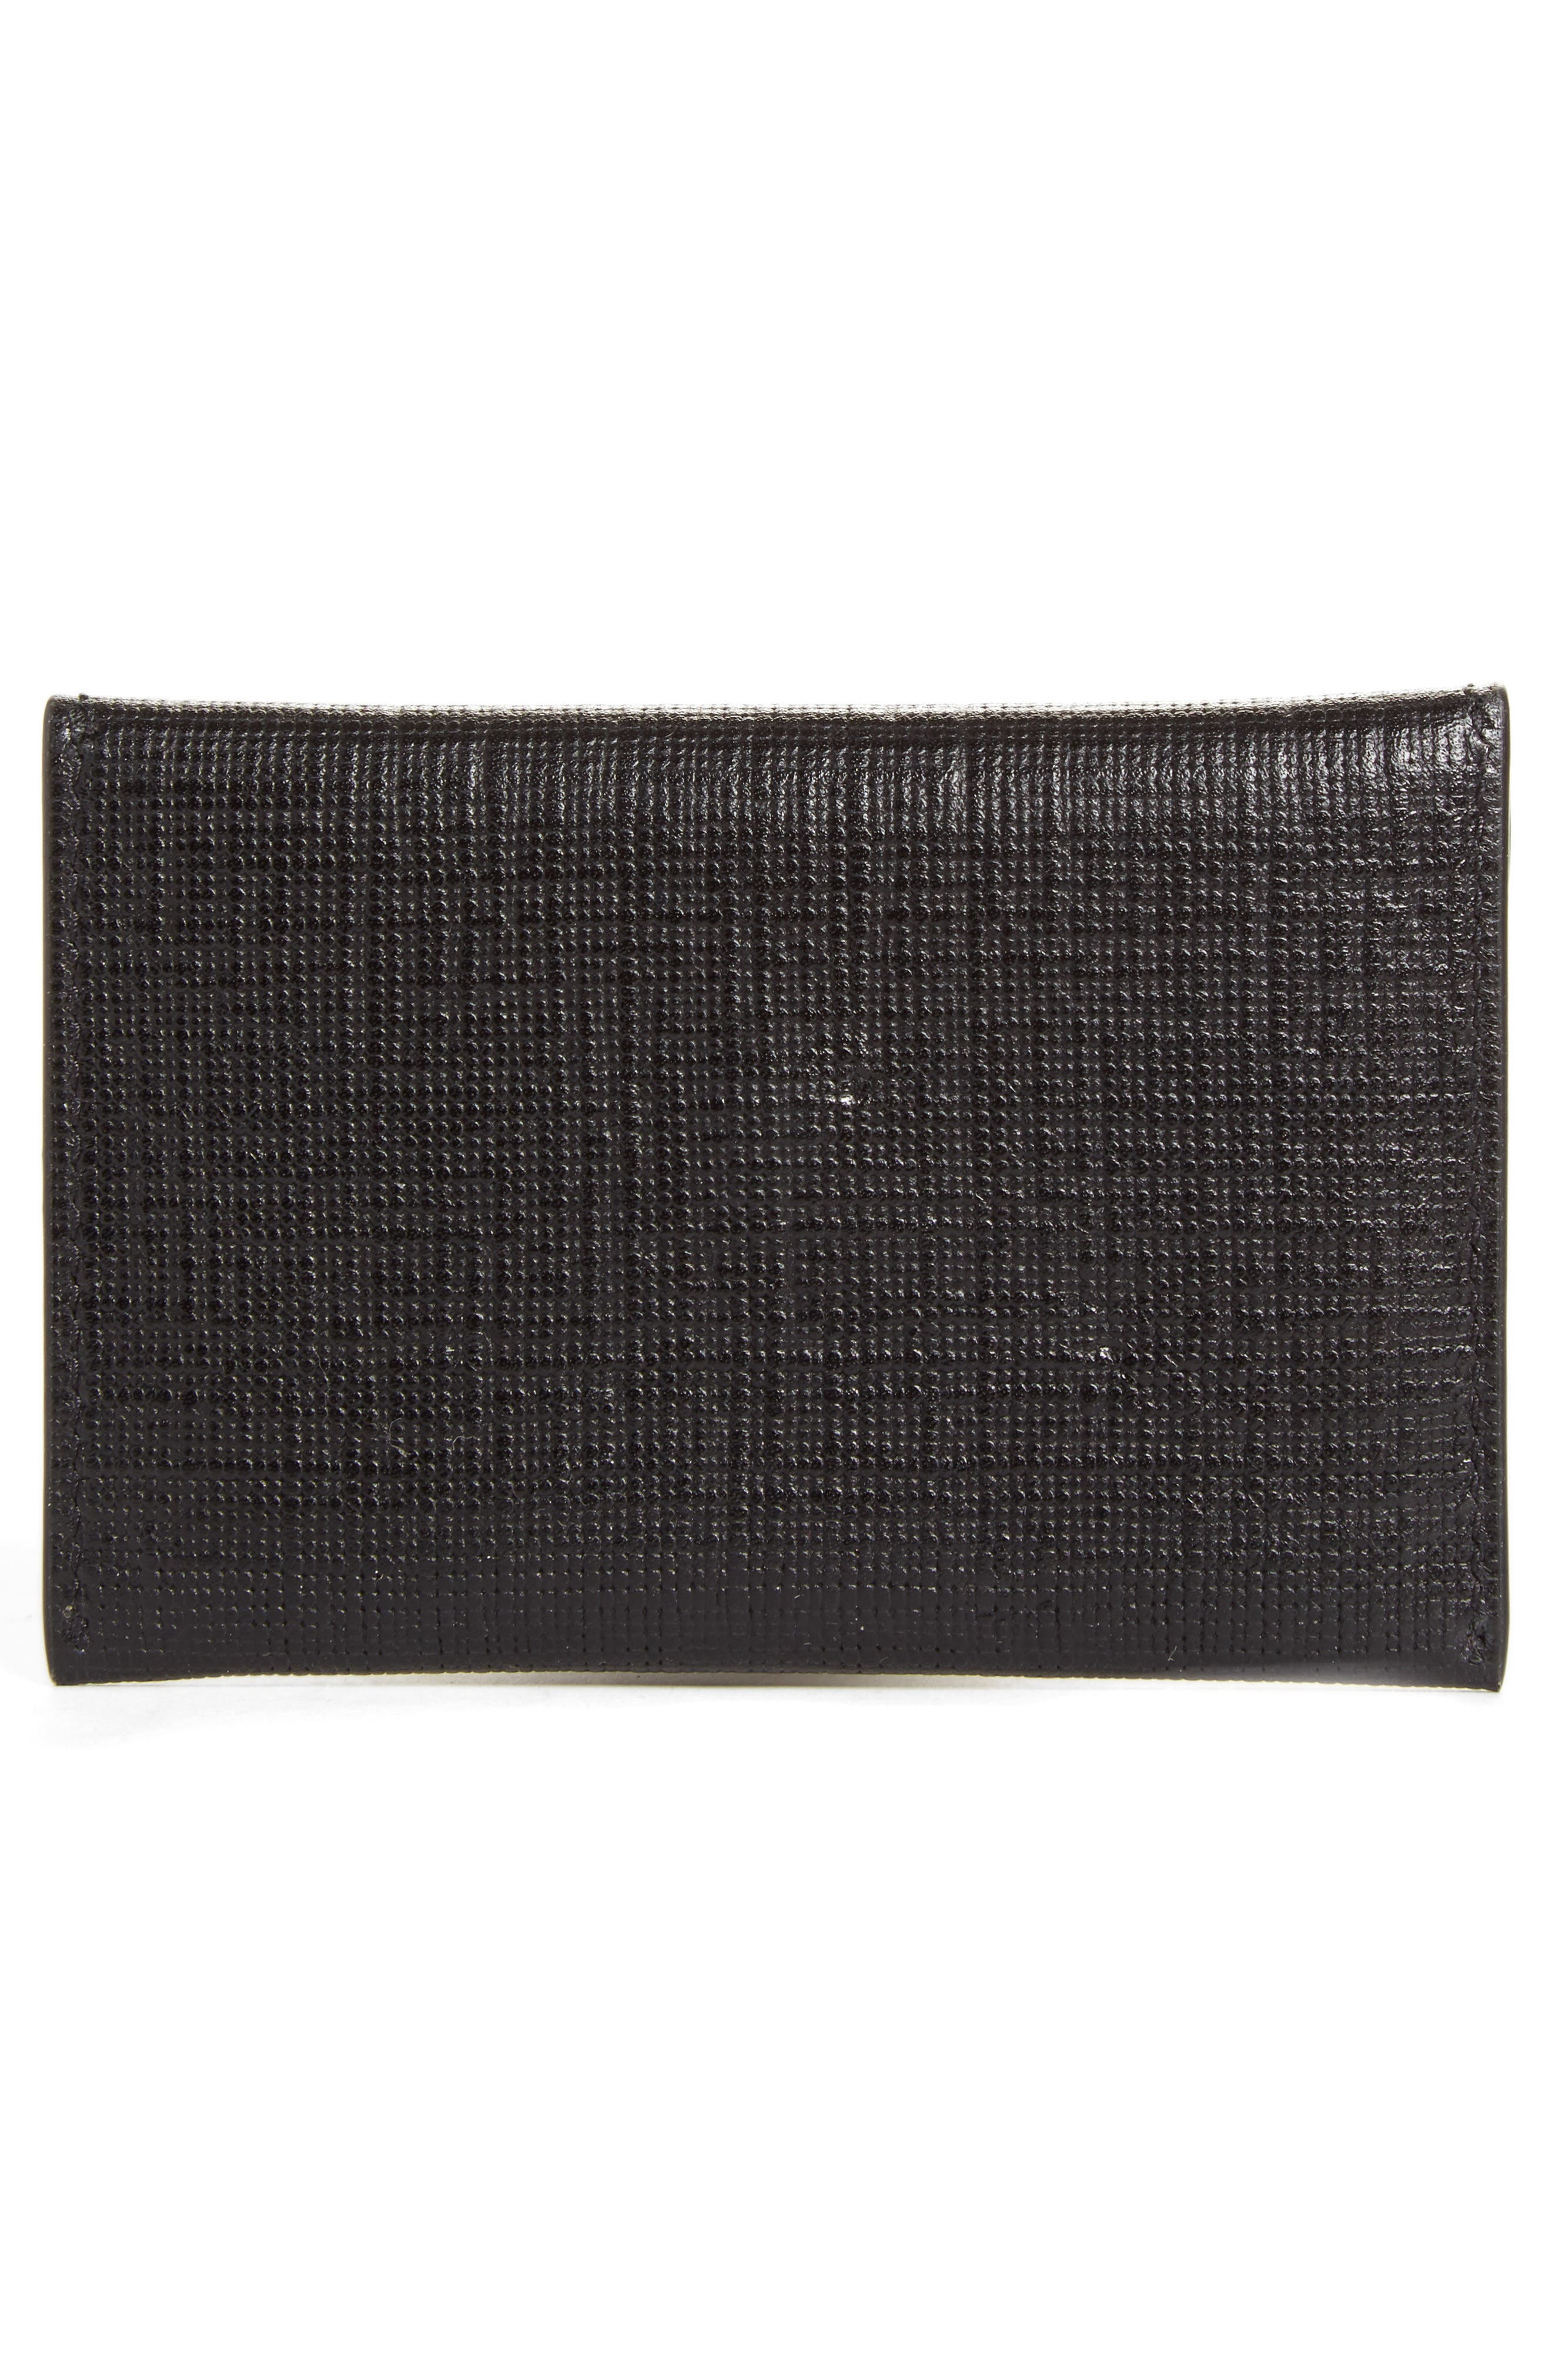 Embossed Leather Envelope Card Case,                             Alternate thumbnail 2, color,                             001